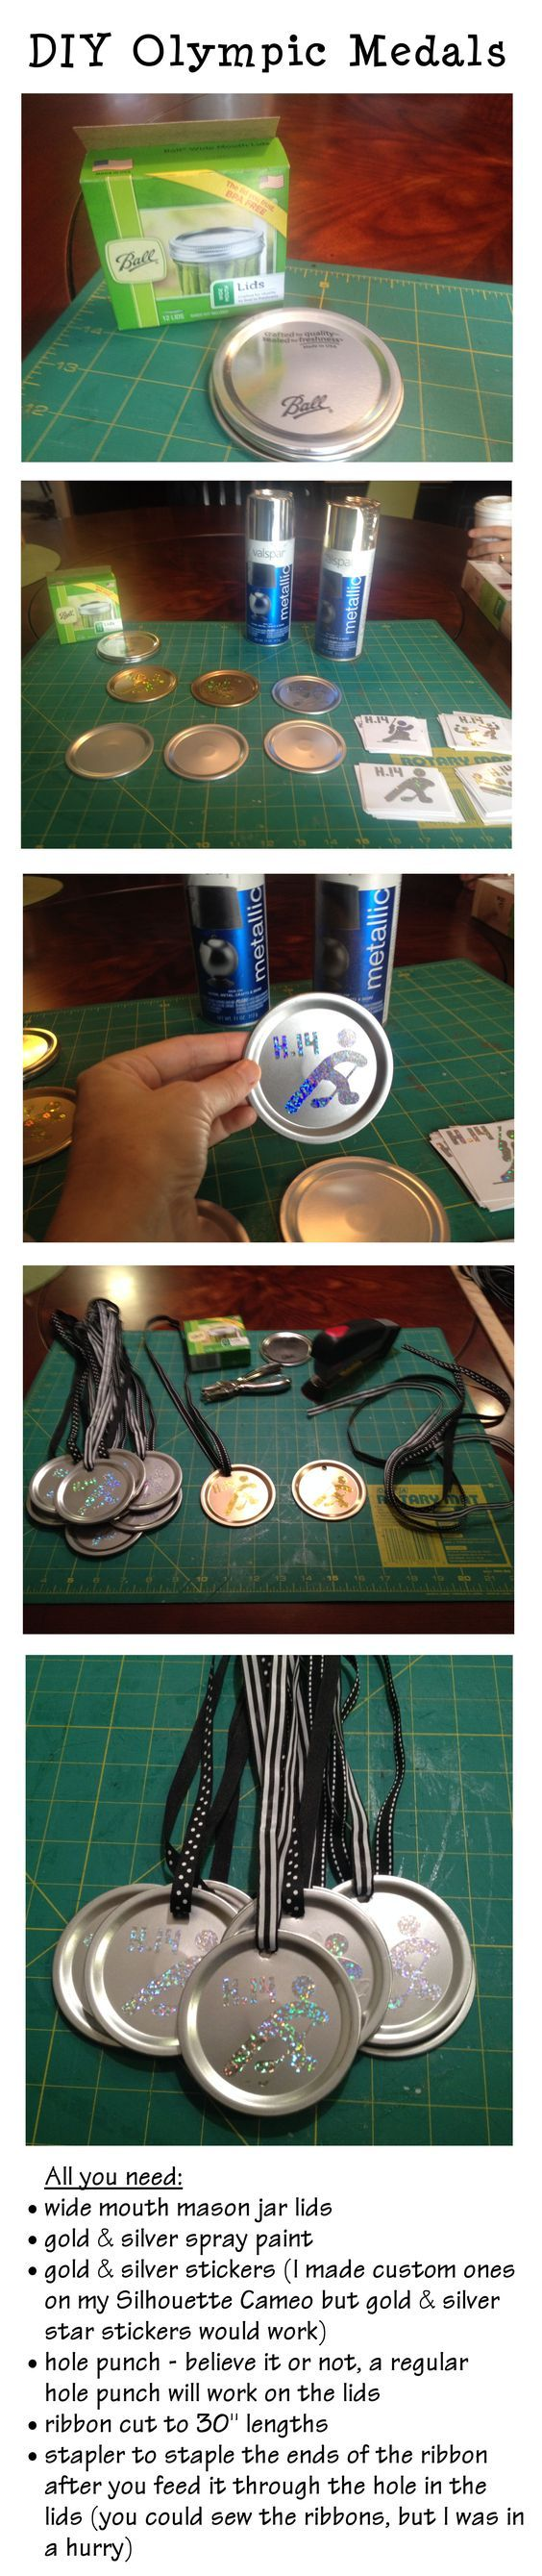 """Cheap and easy DIY Olympic Medals - For my daughter's Winter Olympics-themed birthday party, we planned """"events"""" - knee hockey, team snowball fight, etc - and awarded these DIY Olympic Medals.:"""